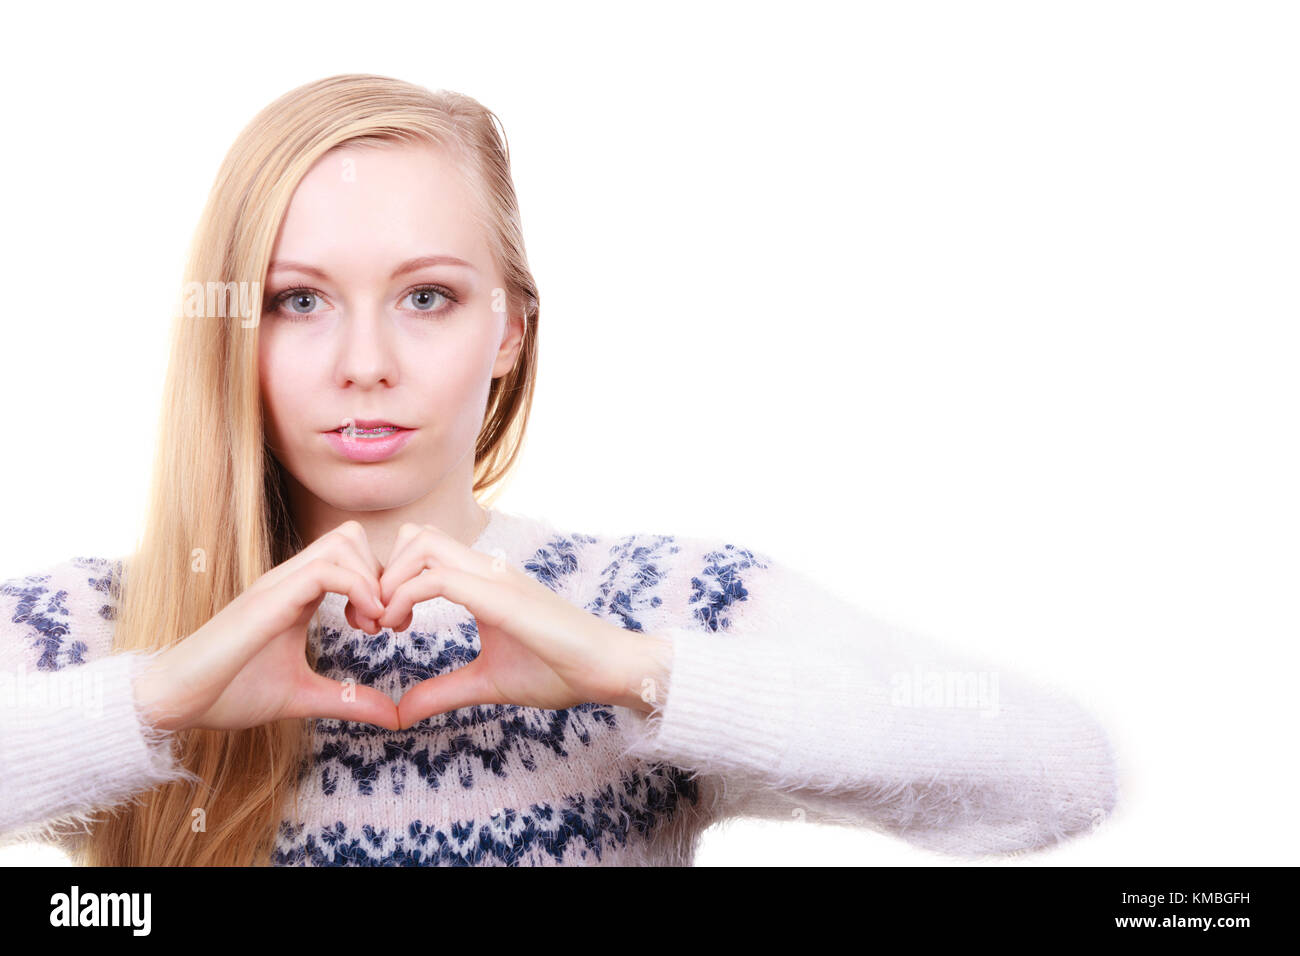 Gestures Signs And Symbols Concept Teenage Girl Making Heart Sign